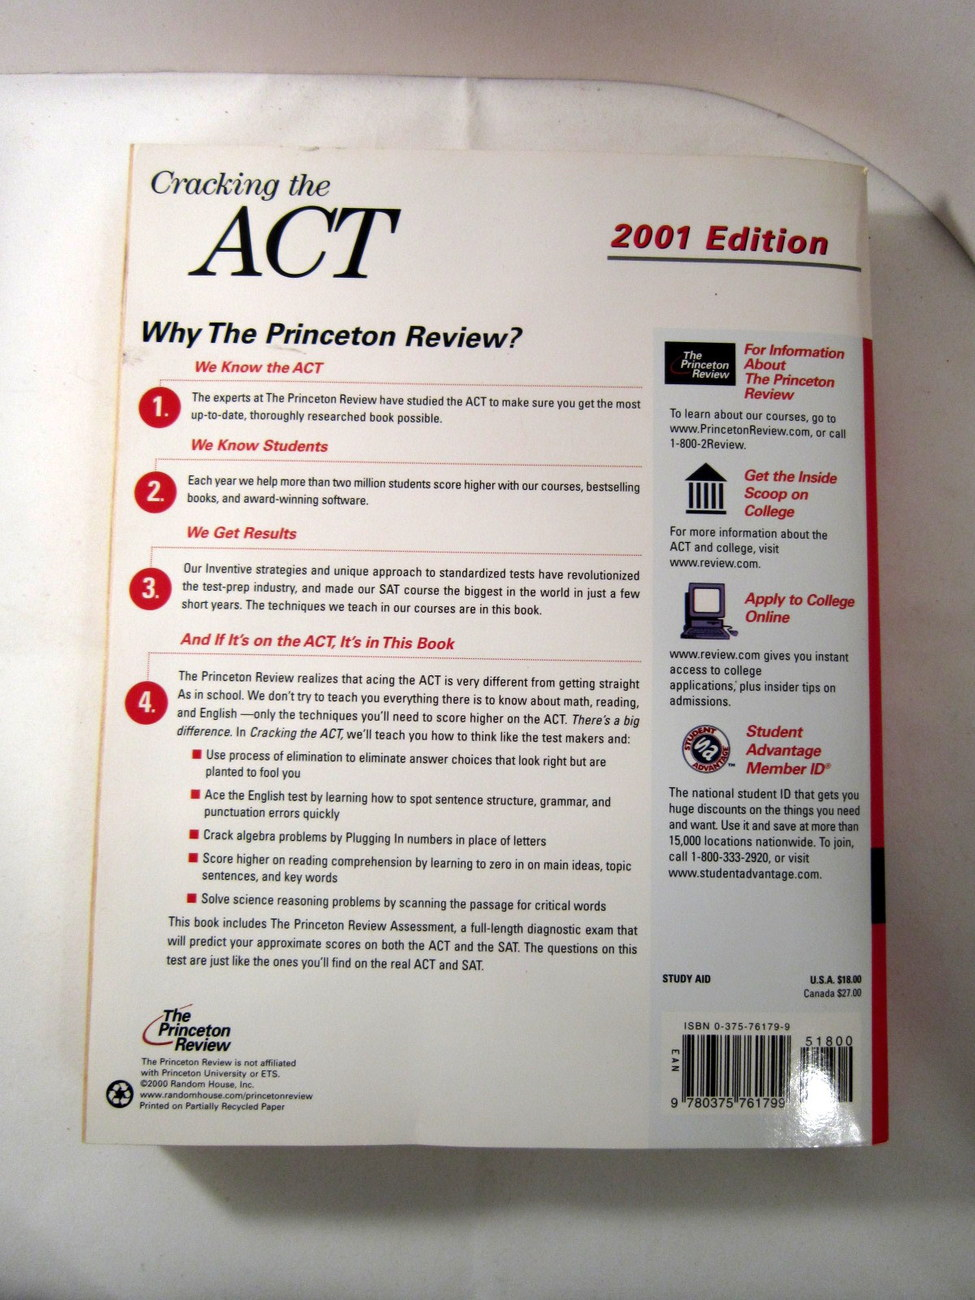 Cracking the ACT 2001 Princeton Review Study Aid image 2